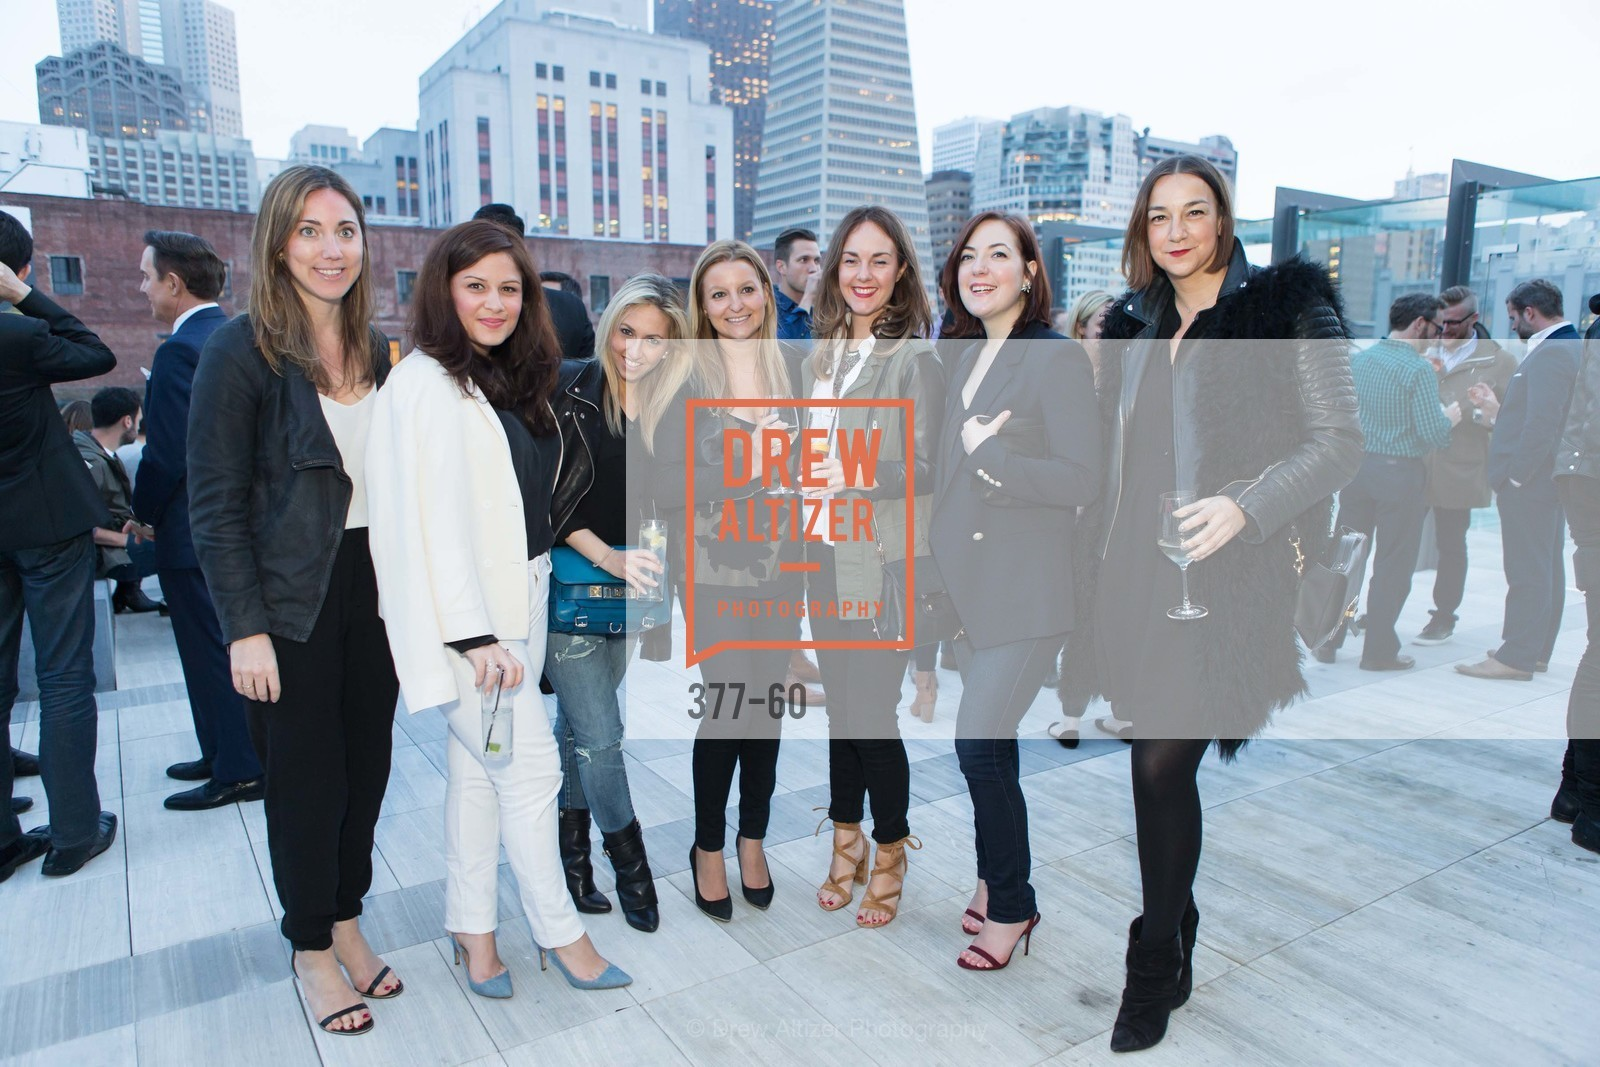 Lydia Williams, Segal Hanarvar, Sherry Alexander, Kristin Cat, Lauren Elrich, Nicole Russo, Lupe Puerta, MR PORTER Celebrate The San Francisco Issue of The Journal, The Battery Rooftop - The Battery SF, April 23rd, 2015,Drew Altizer, Drew Altizer Photography, full-service agency, private events, San Francisco photographer, photographer california